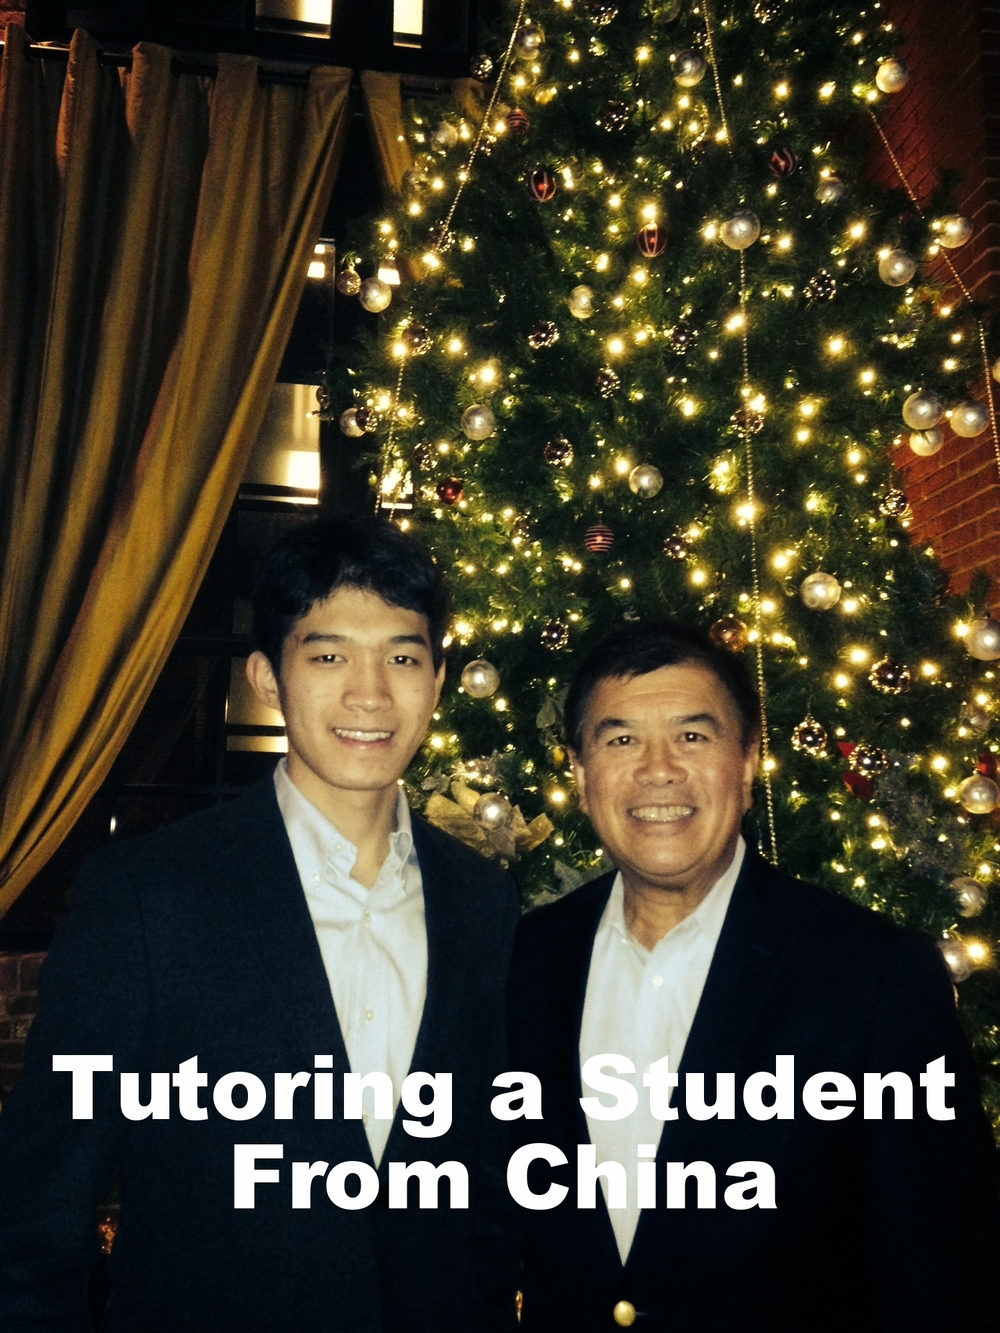 David Wu Tutoring a Student From China